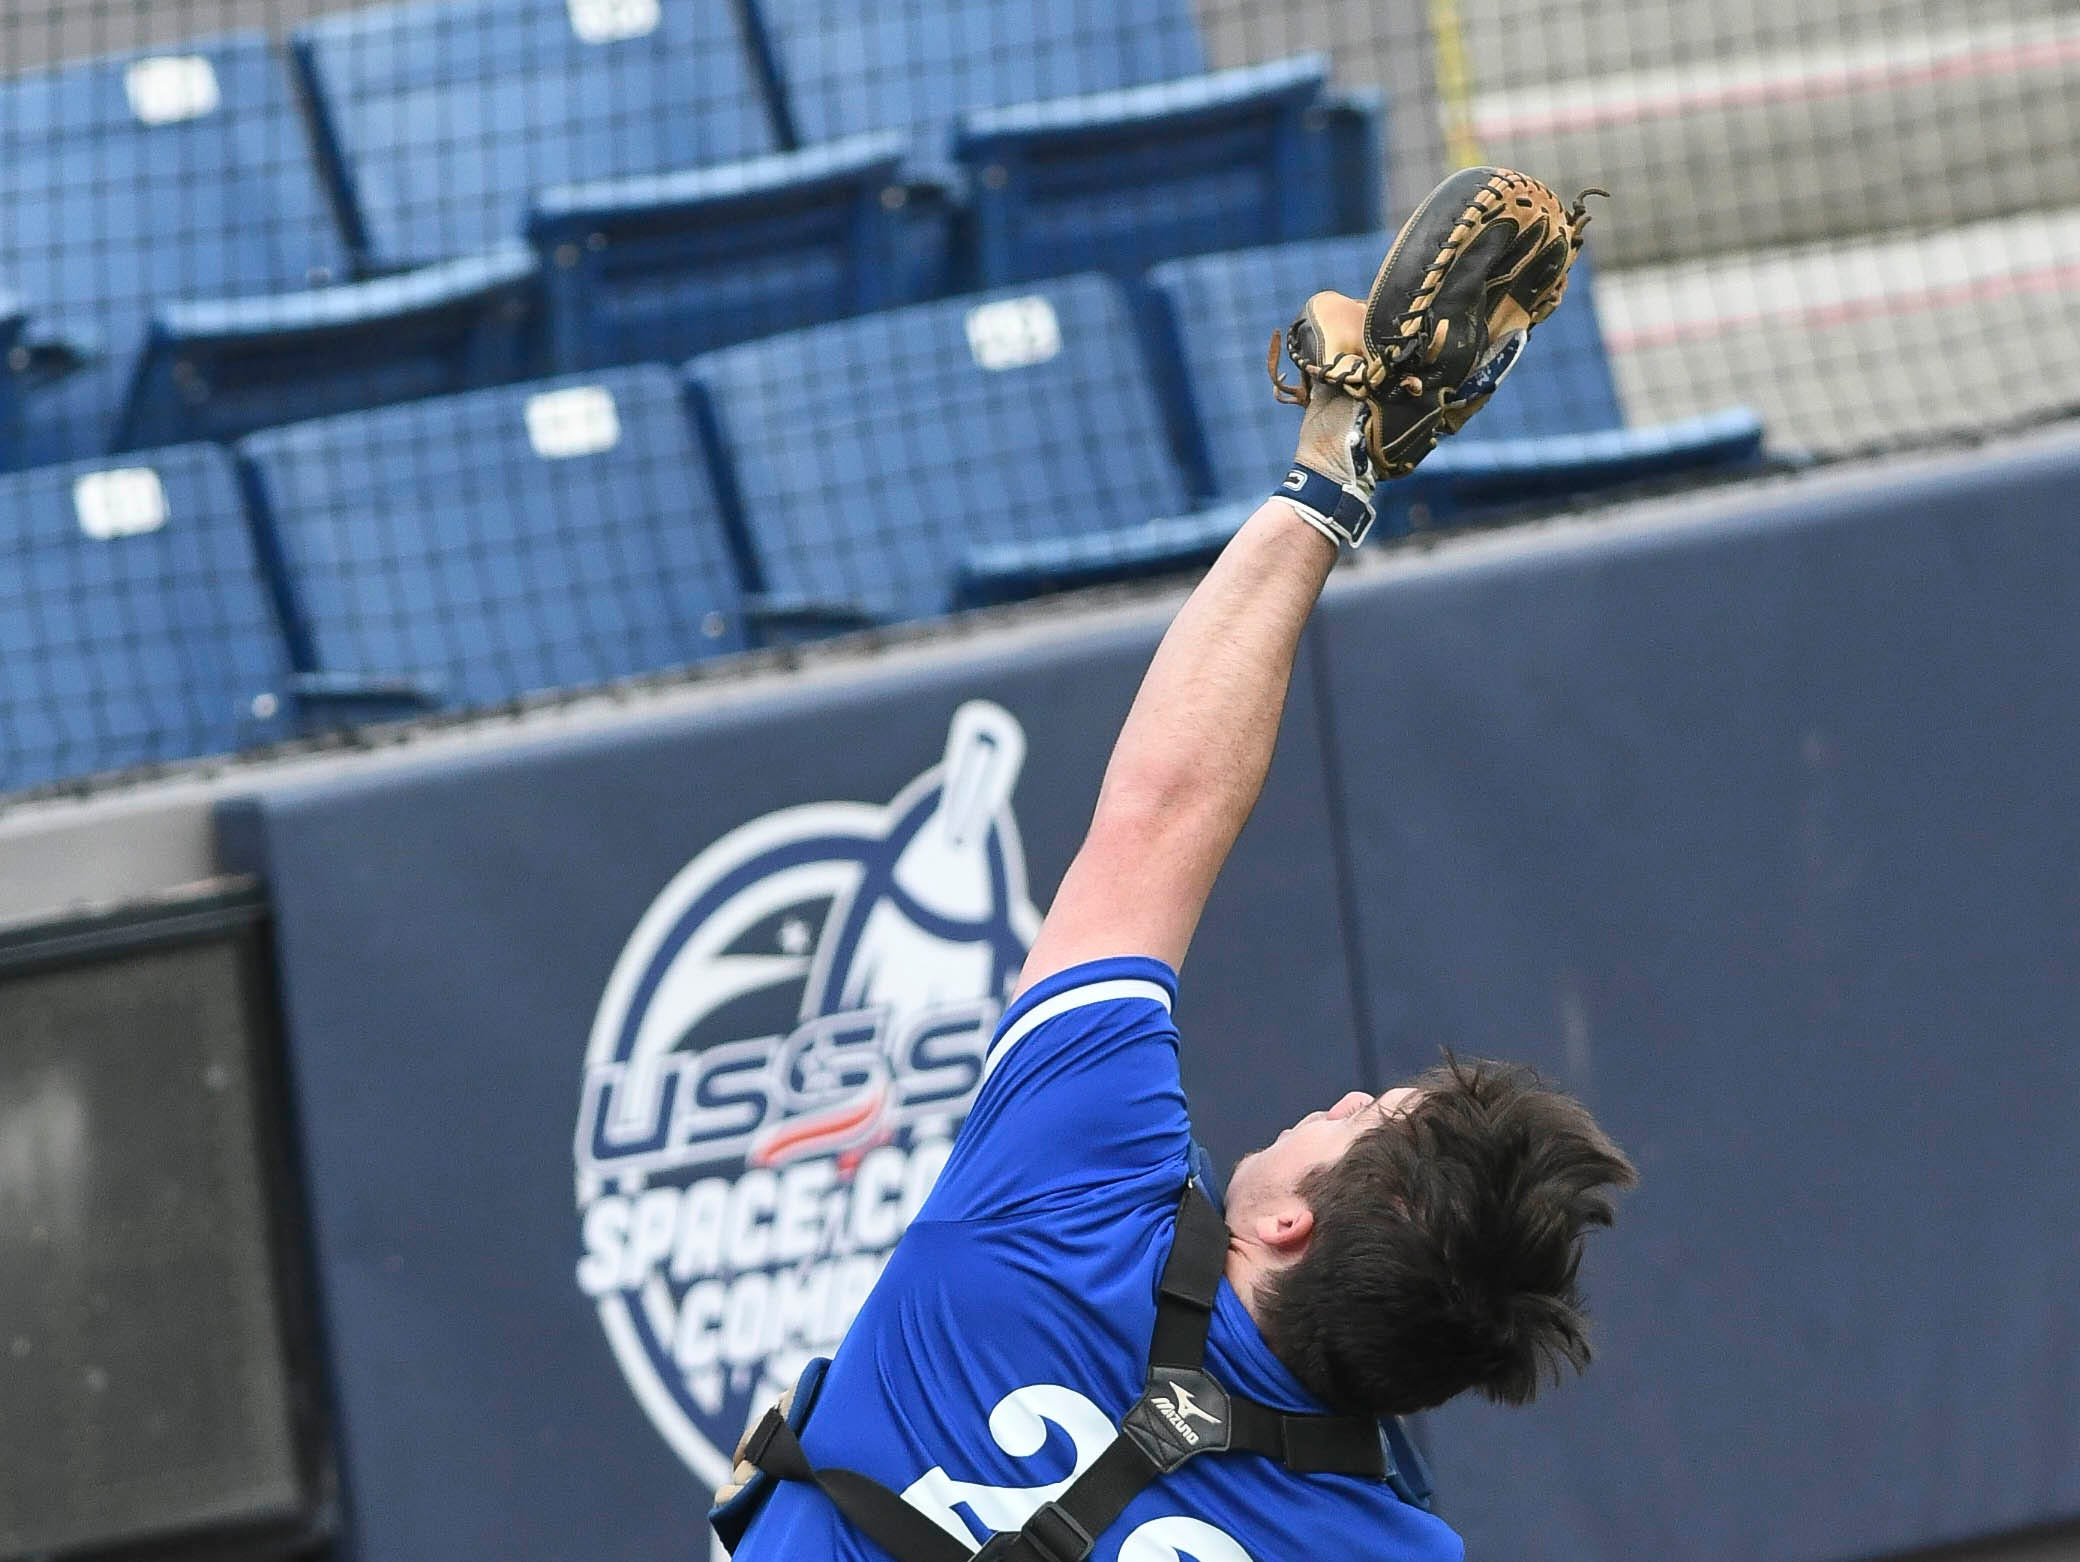 Sebastian River catcher Greg Young tracks down a foul ball during Wednesday's game at USSSA Space Coast Stadium.